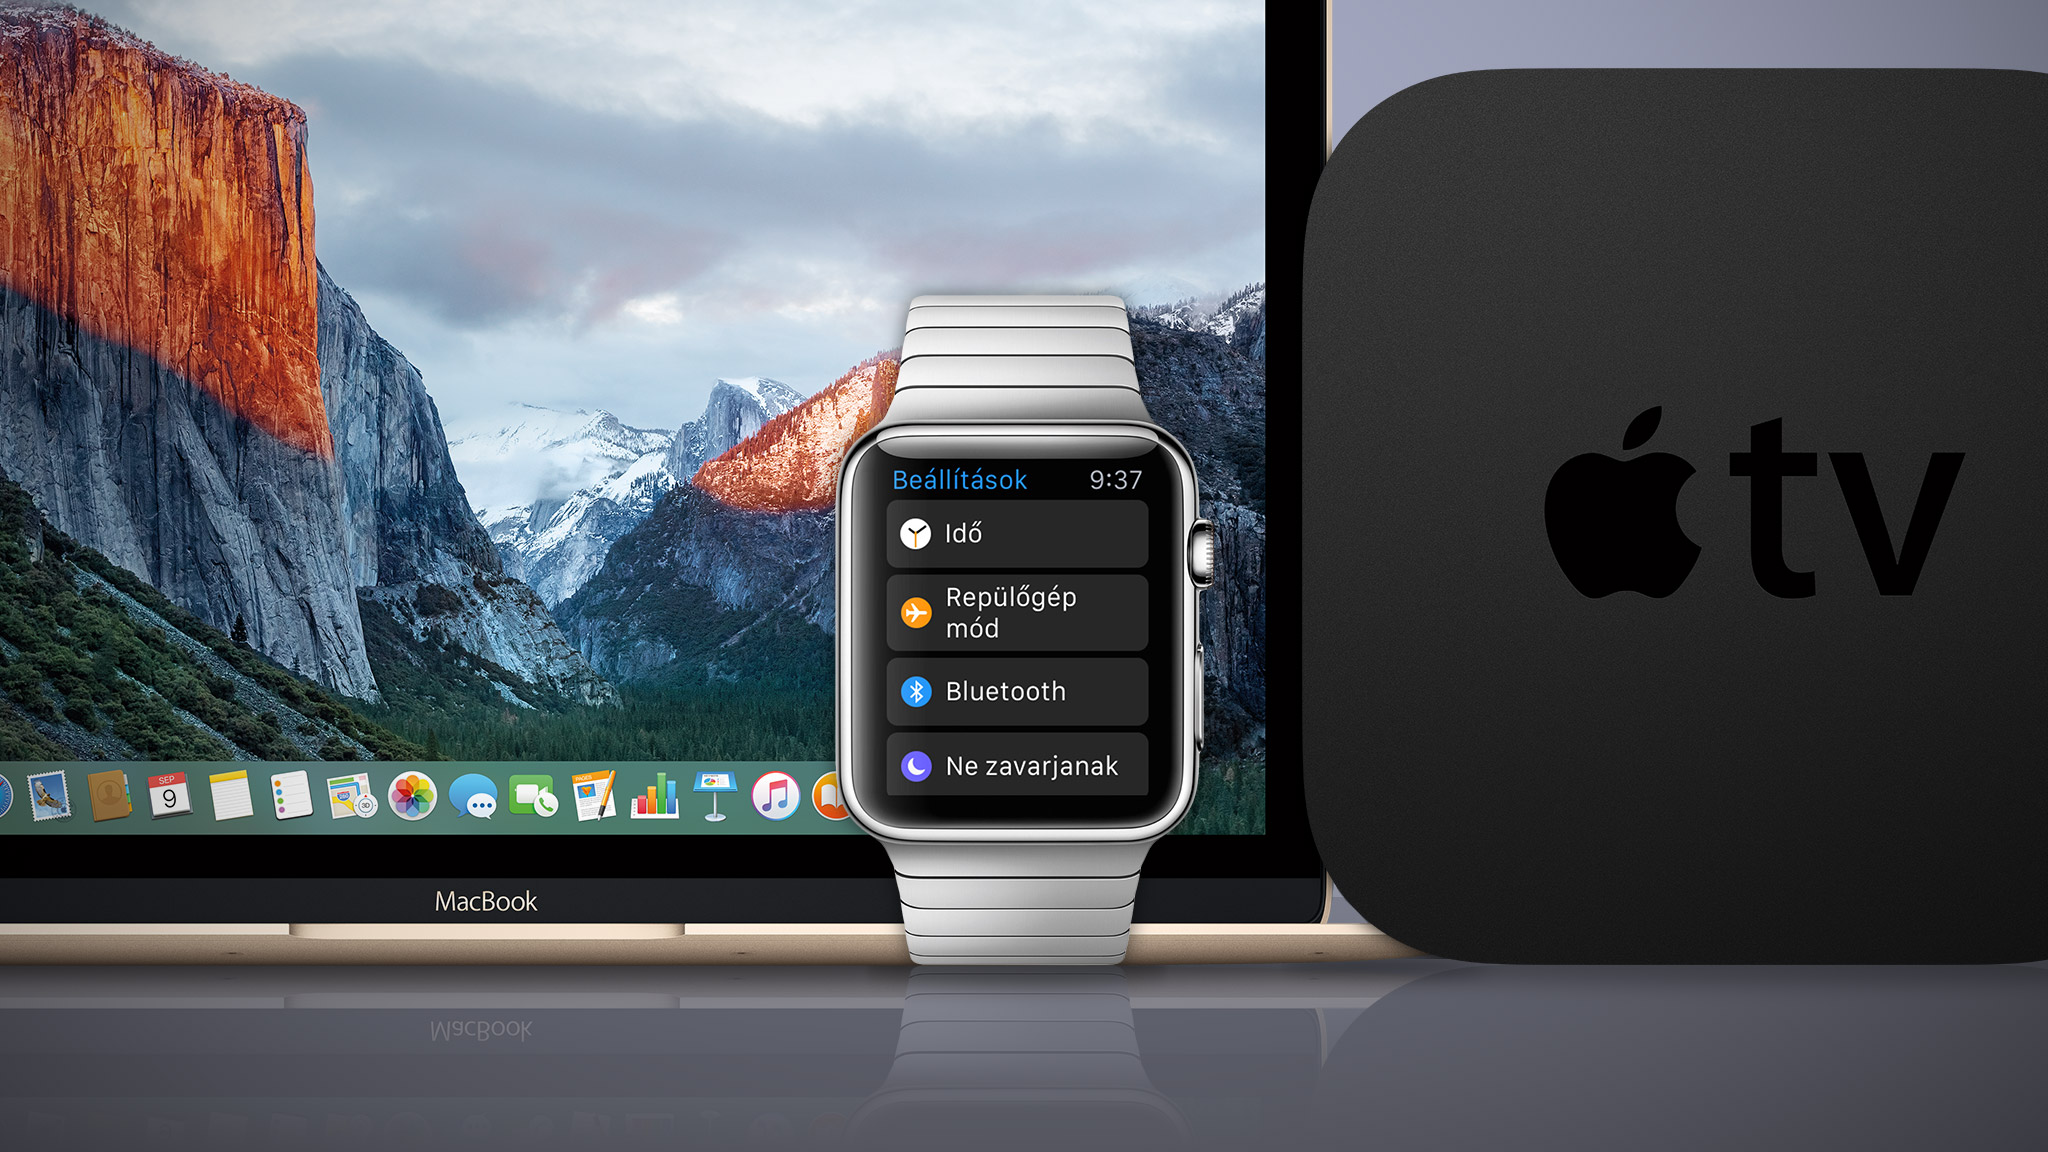 Became available the third beta version of OS X 10.11.4, watchOS 2.2 and 9.2 tvOS